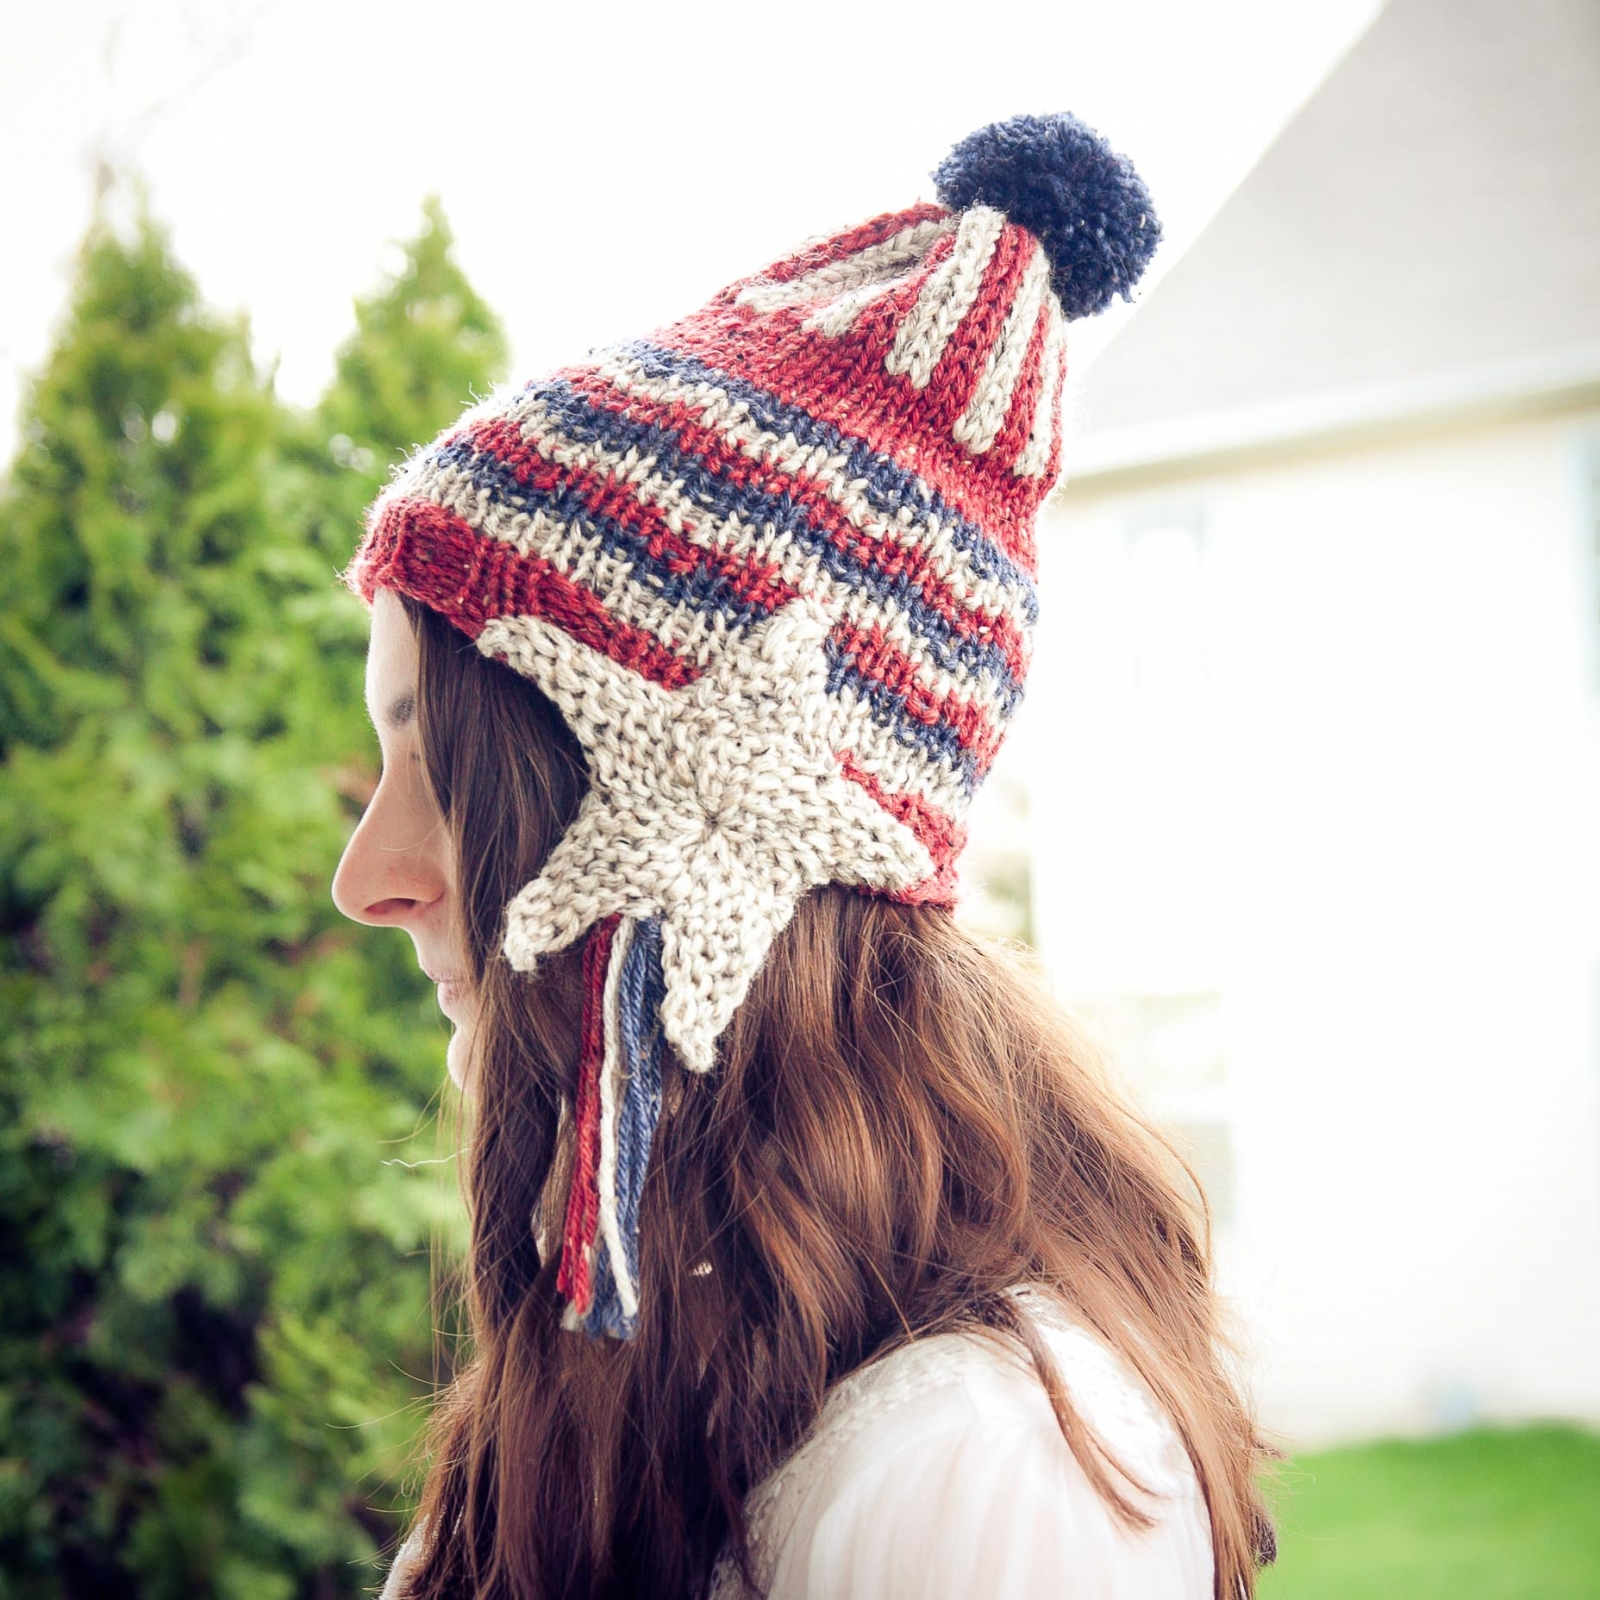 Knitting Loom Hat : Loom knit patriotic earflap hat pattern this moment is good